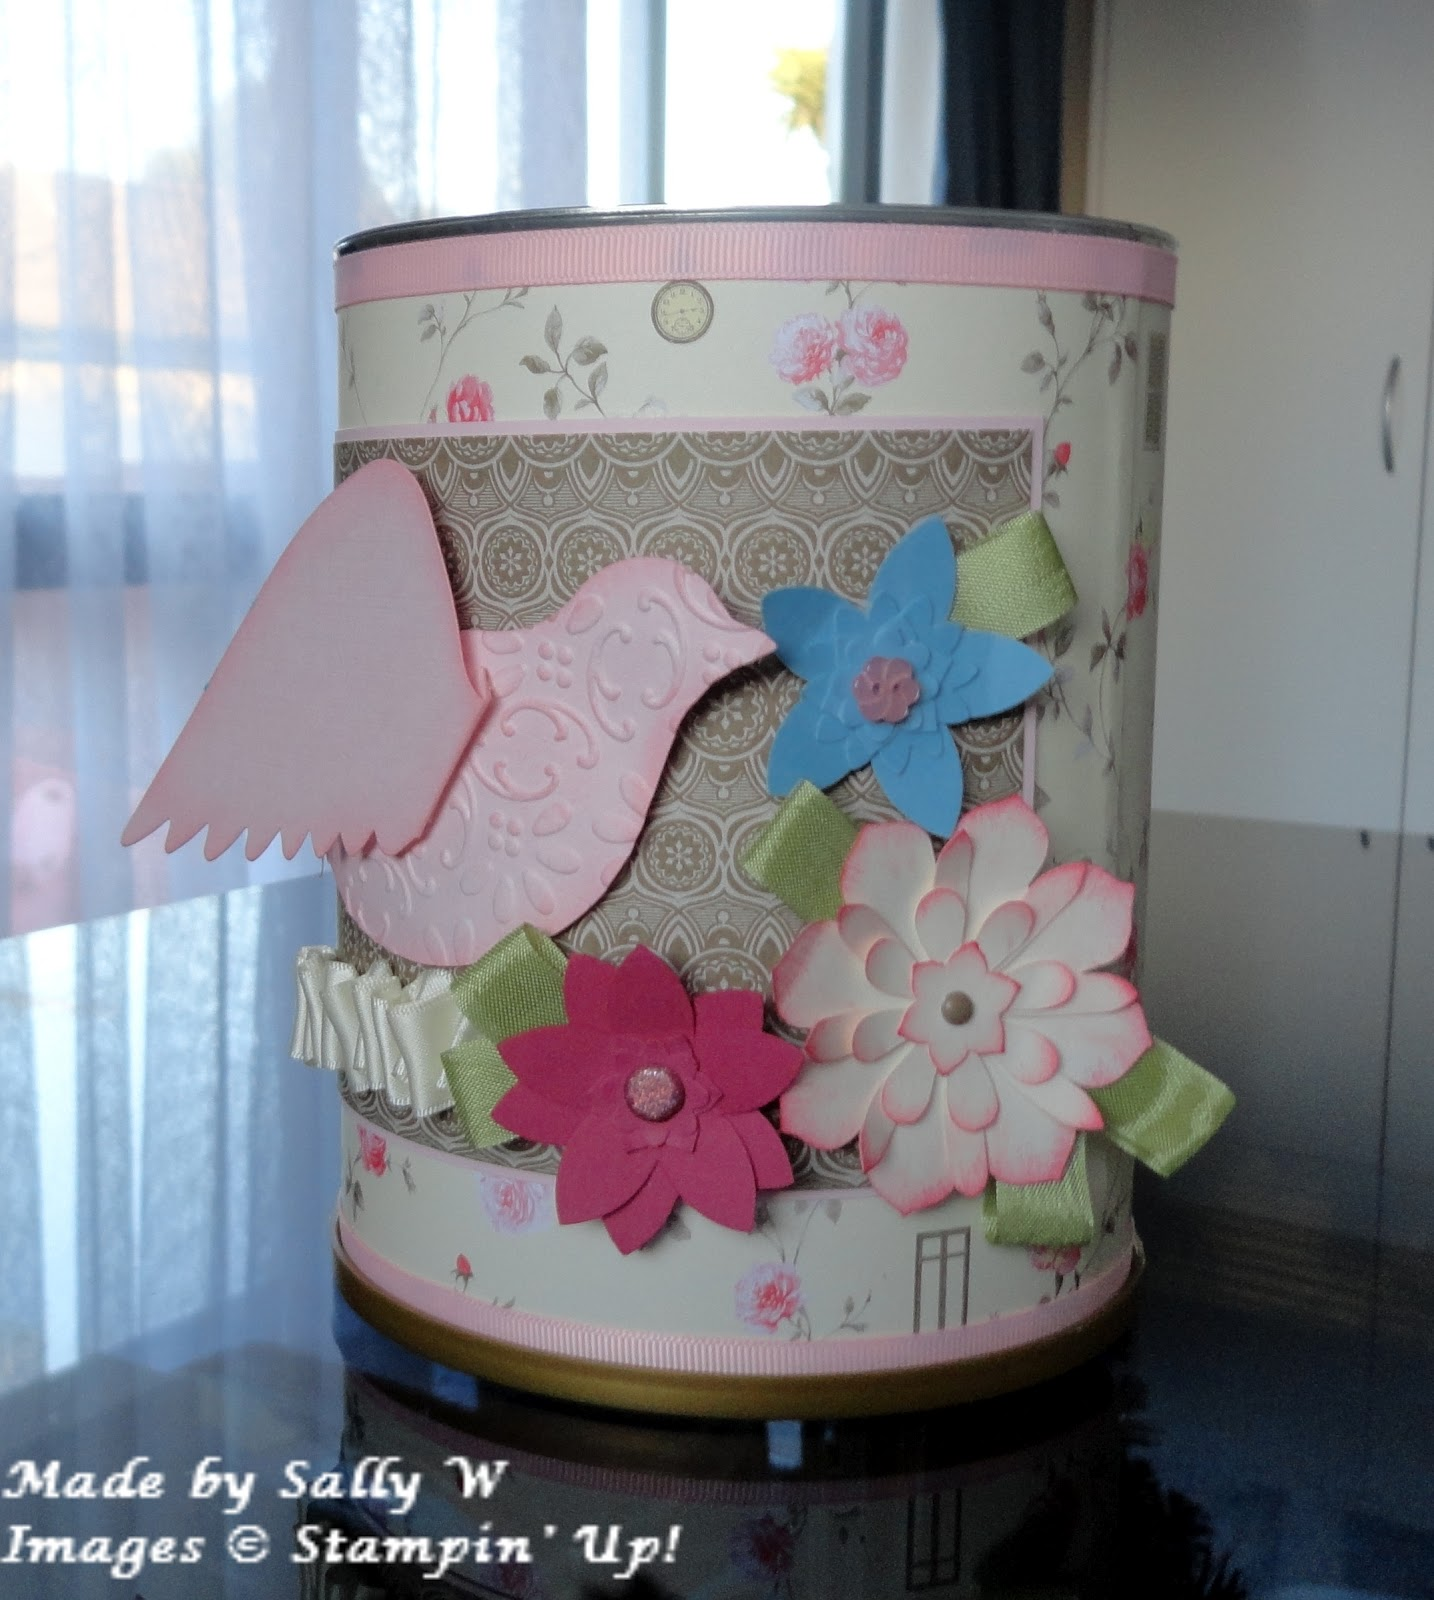 Big W Rubbish Bin Sally 39s Stamping Delights Birds And Flowers On My Rubbish Bin